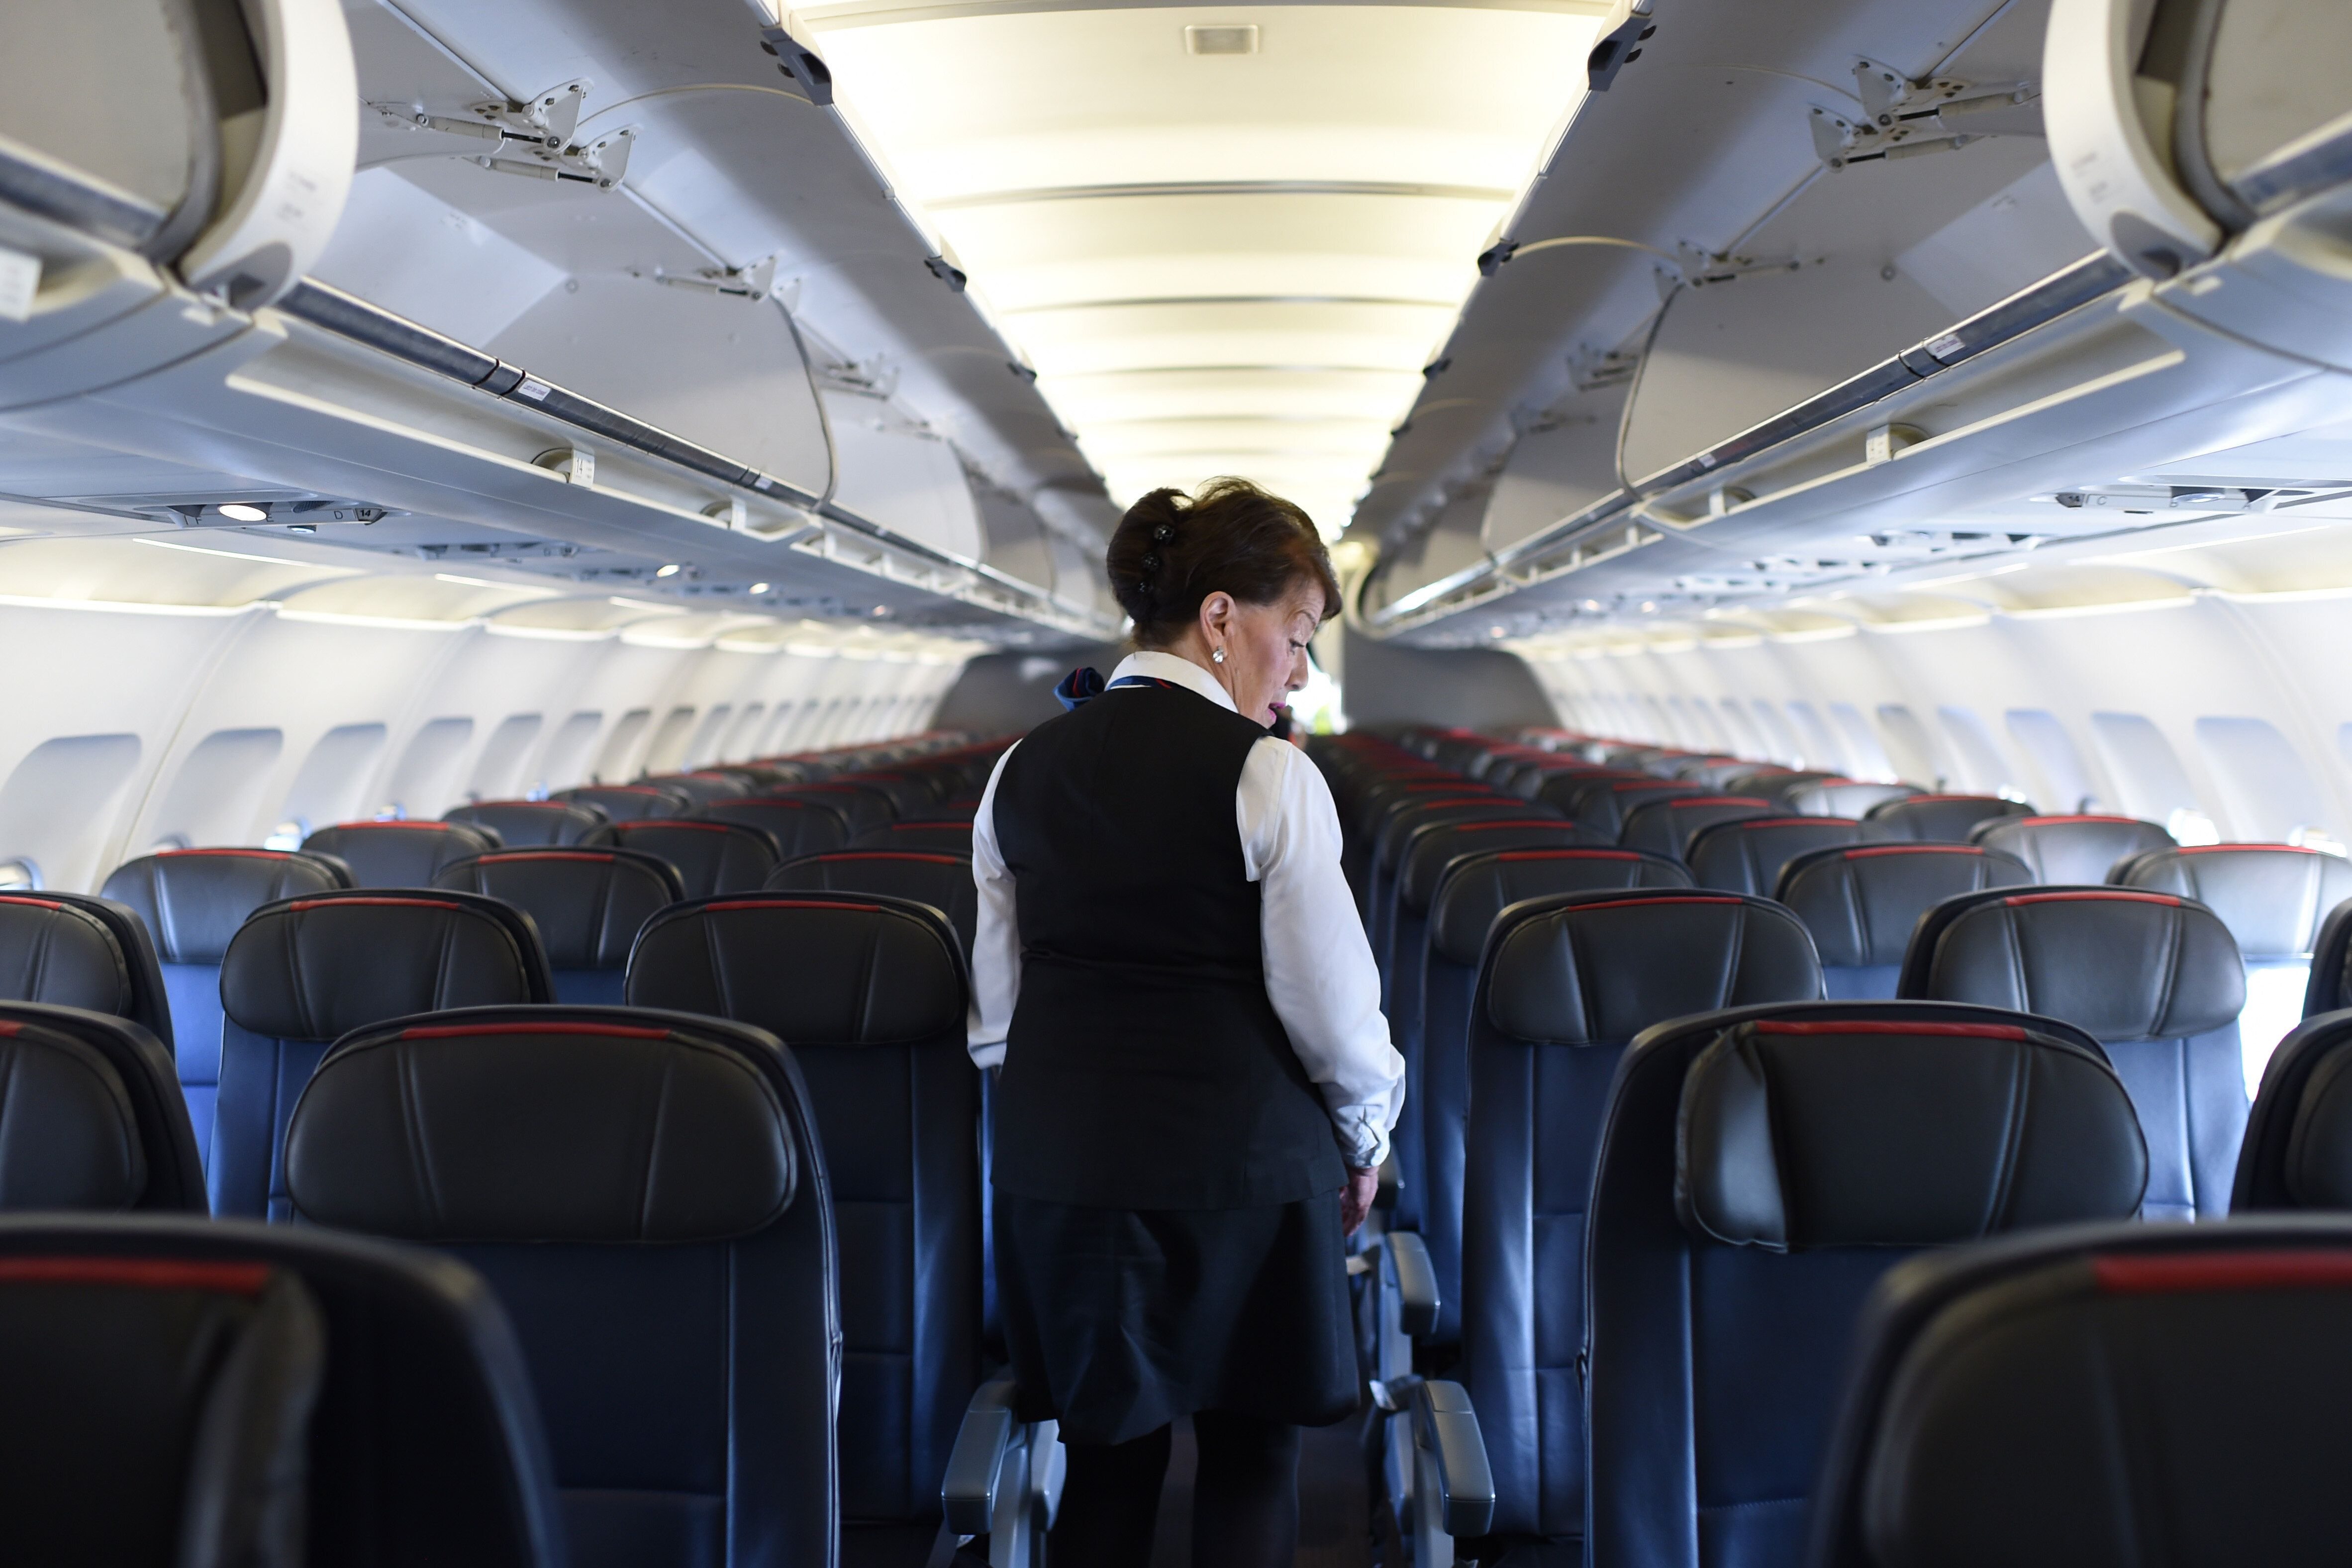 American Airlines longest serving flight attendant, Bette Nash (R), 81 years old, checks the passengers' seats for forgotten items before disembarking from her daily return flight to Boston at Ronald Reagan Washington Airport in Arlington, Virginia on December 19, 2017.   American Airlines Flight 2160 from Boston has just arrived in Washington, D.C., and Bette Nash, 81, helps the passengers disembark. After six decades crossing the skies as a flight attendant, Nash still has impeccable style, incredible energy and a constant smile. In the United States, pilots must retired at 65 but there is no such restriction on commercial flight attendants, of which Bette Nash is probably the world's most senior. / AFP PHOTO / Eric BARADAT        (Photo credit should read ERIC BARADAT/AFP/Getty Images)